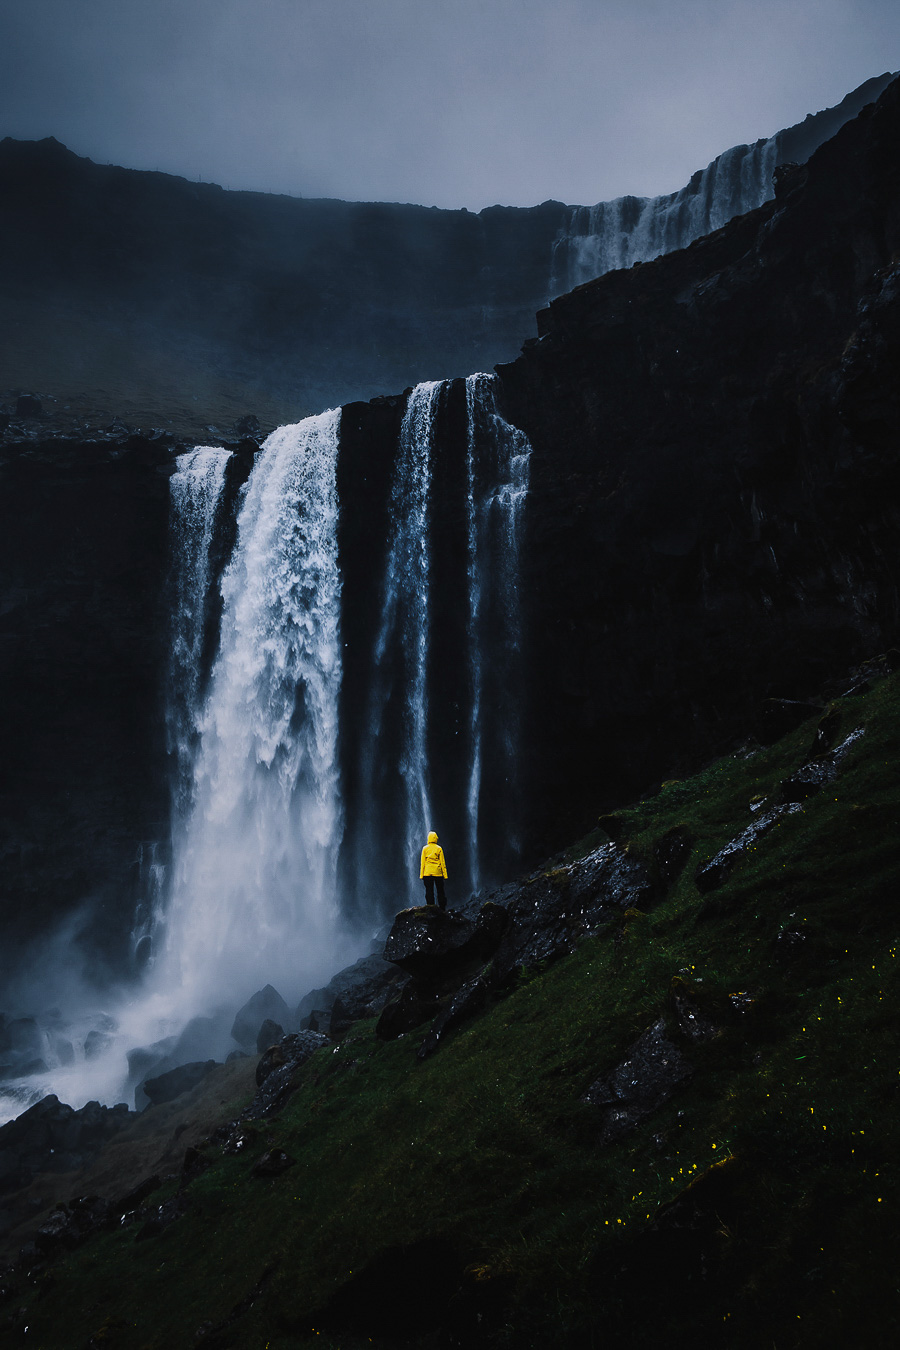 Yellow dressed woman standing in fron of a waterfall